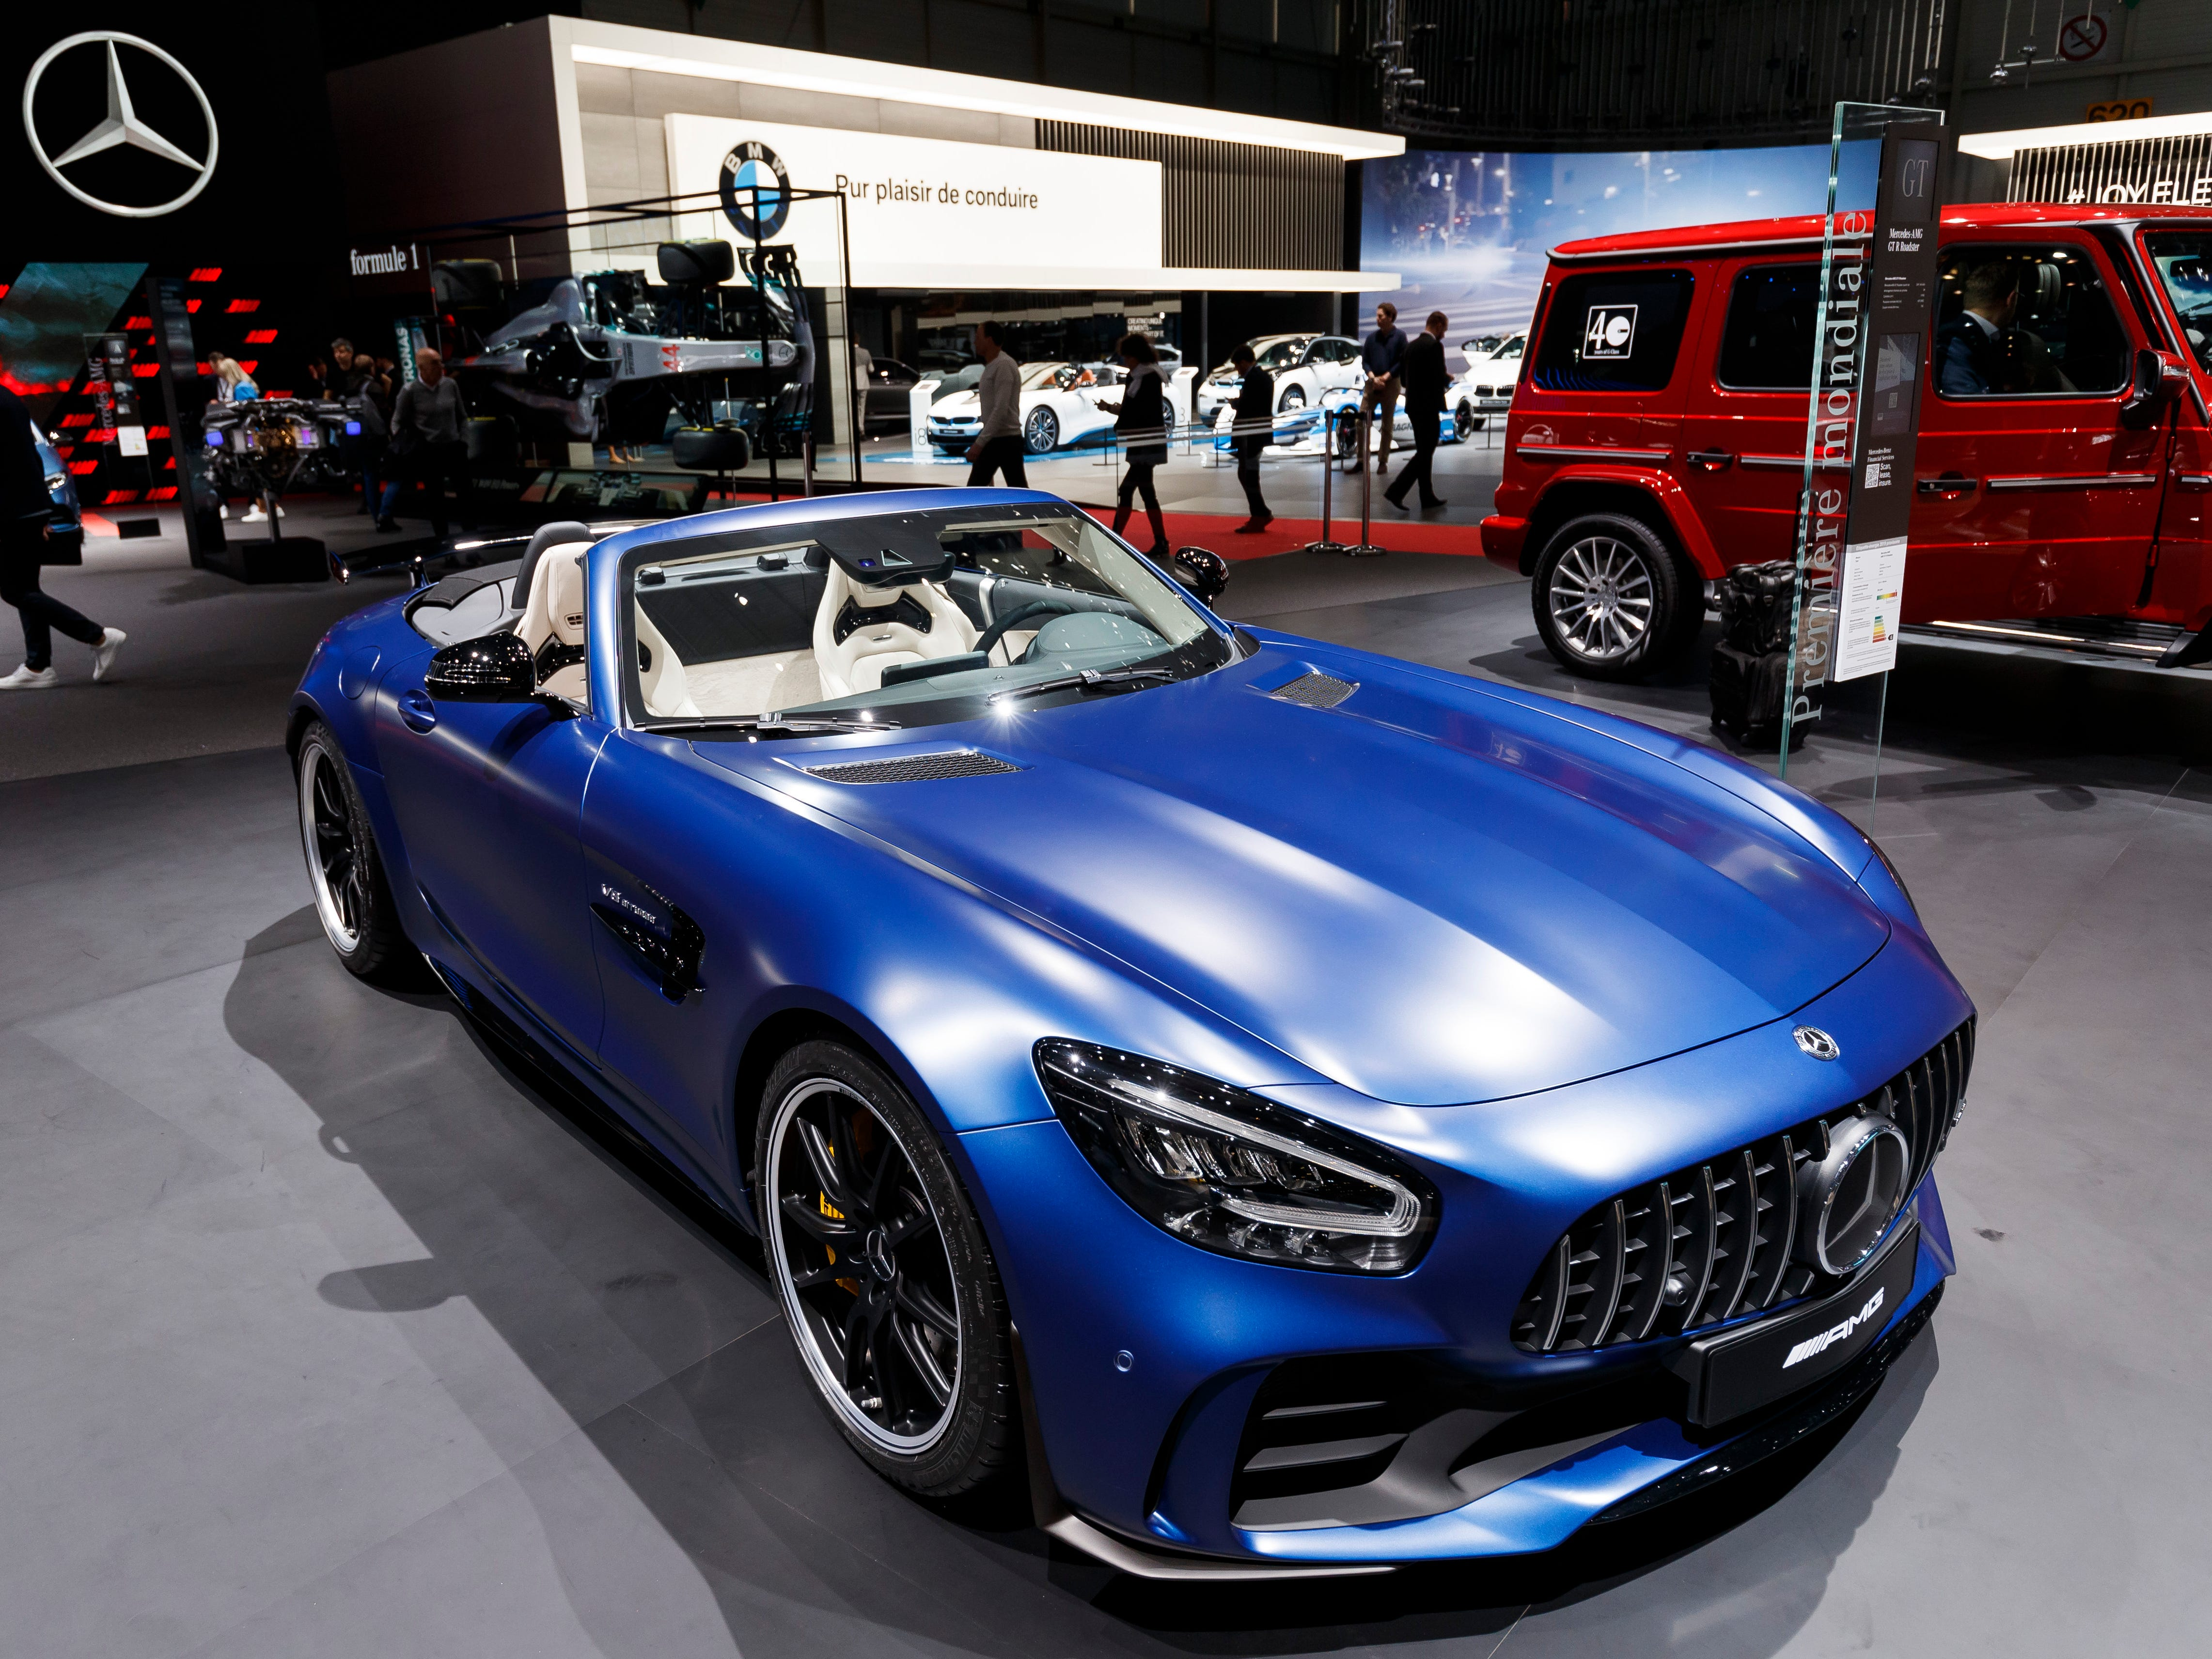 The Mercedes-Benz GT R Roadster